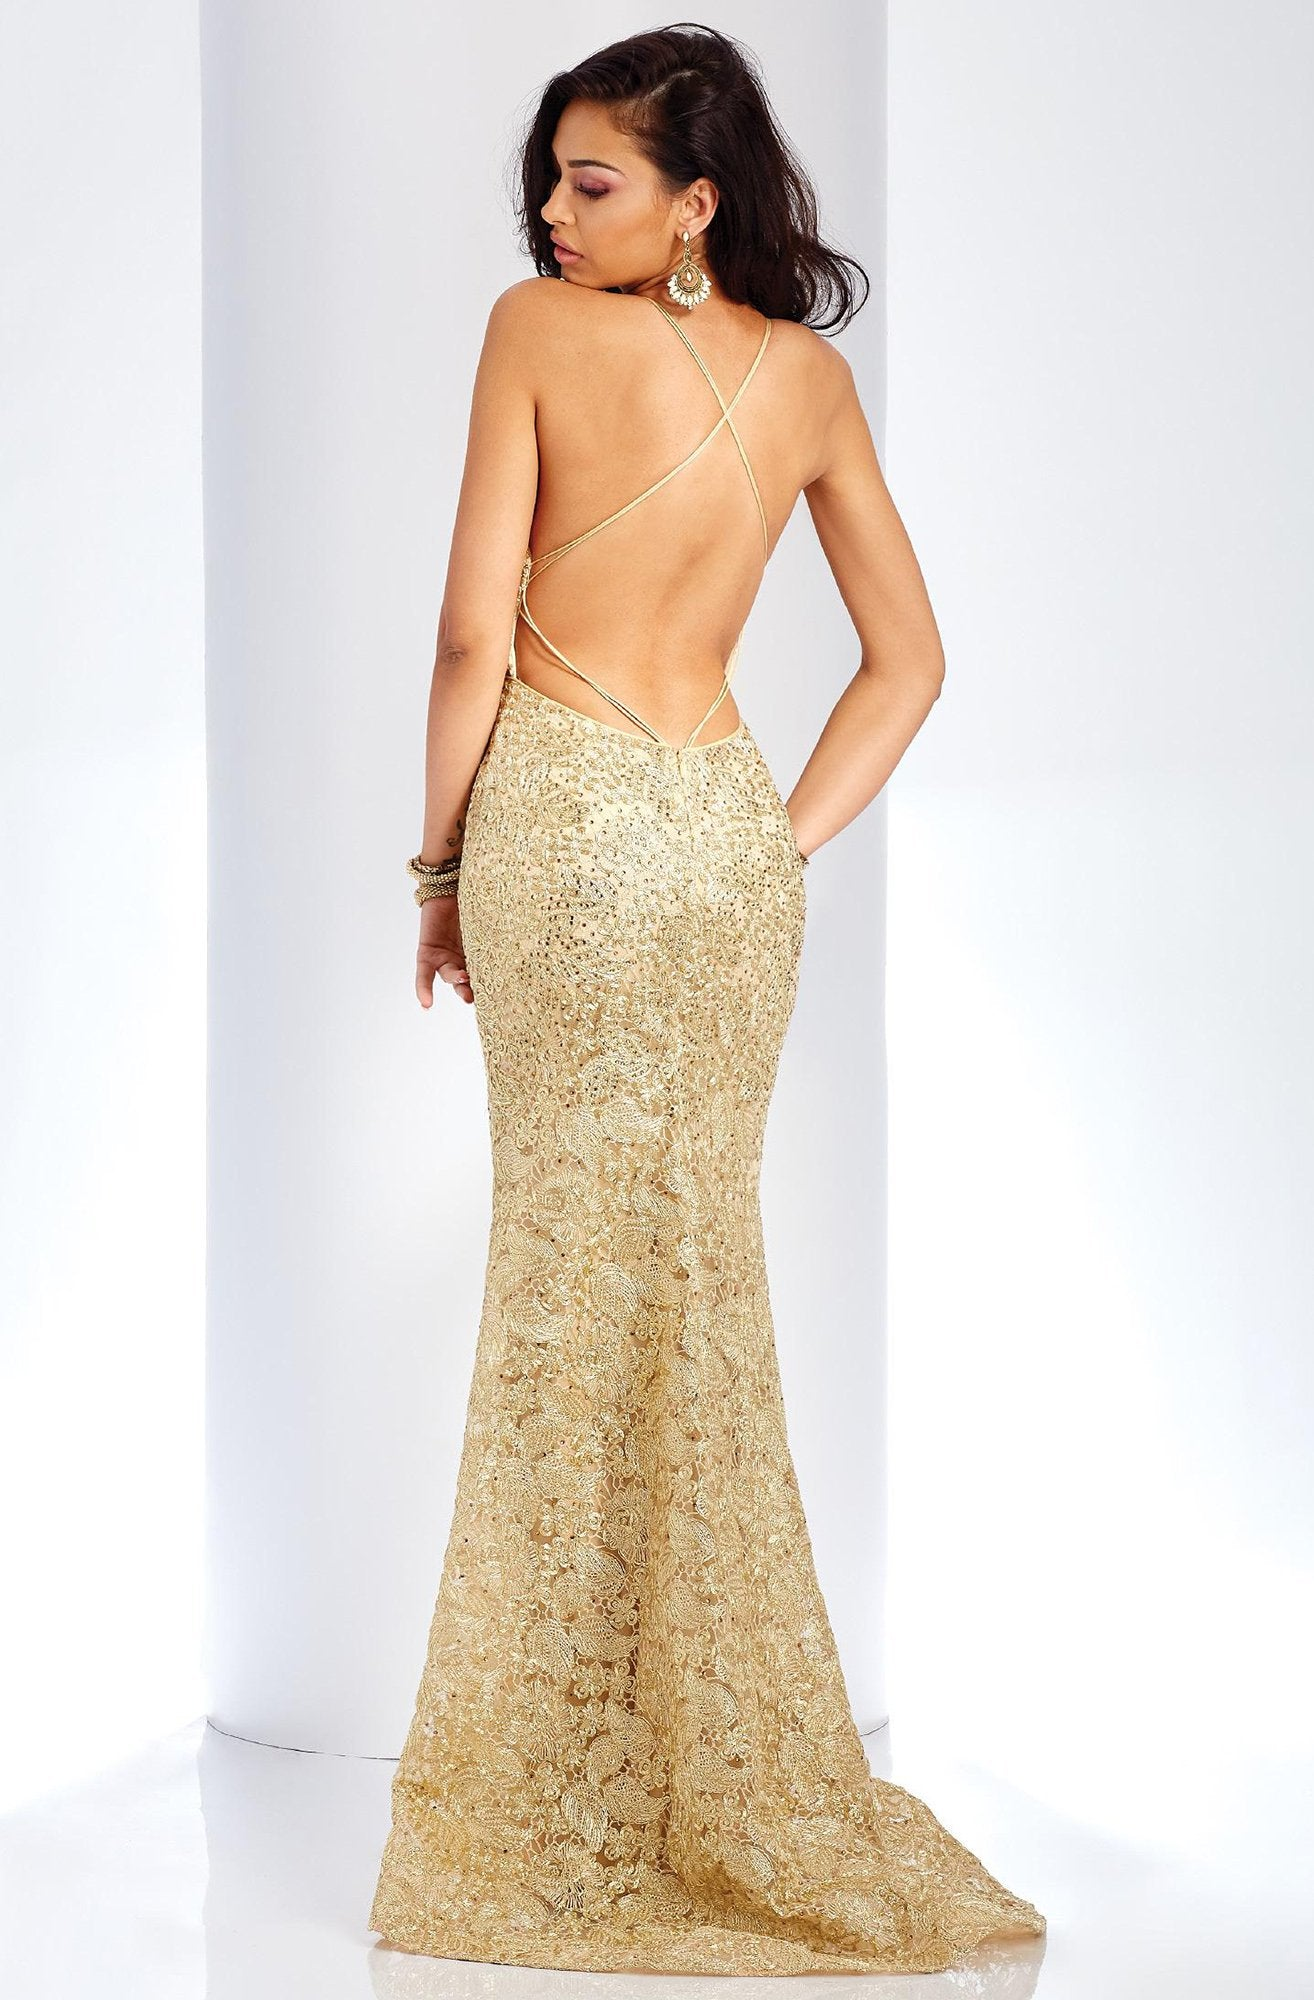 Clarisse - 4960 Deep V-neck Lace Mermaid Dress in Gold